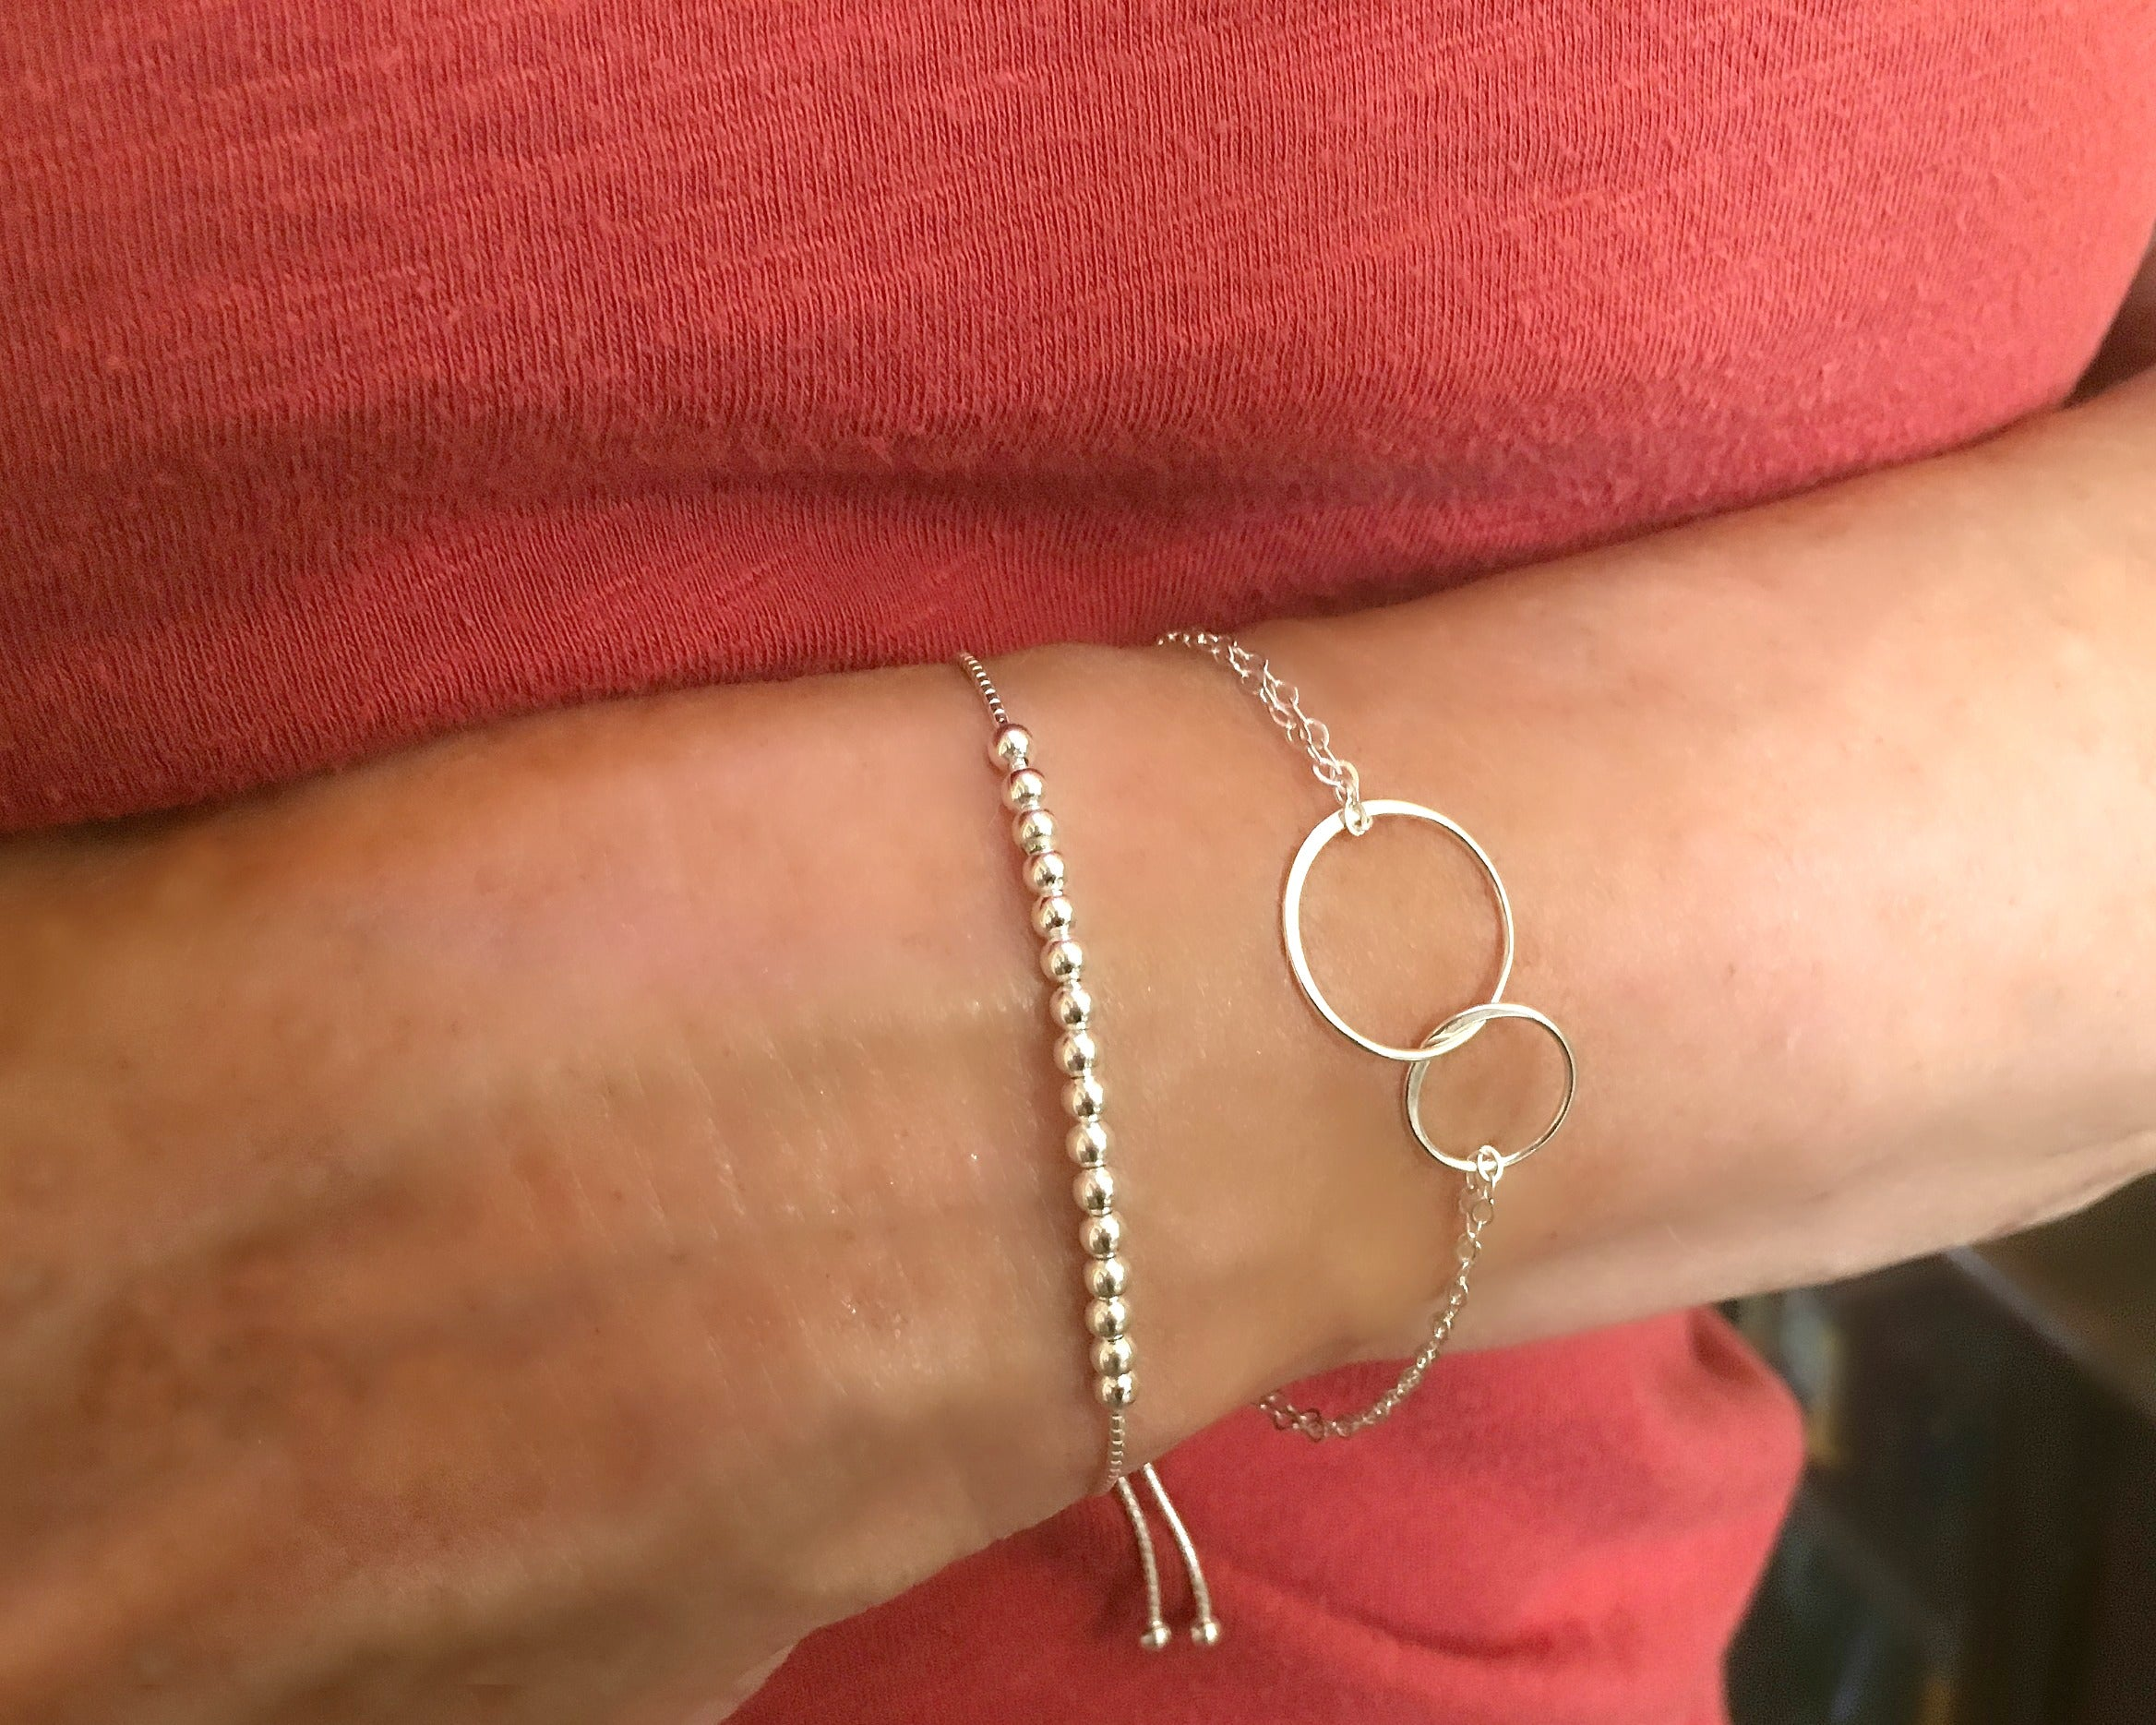 16th Birthday Gifts For Girls 925 Sterling Silver Sweet 16 Bracelet For 16 Year Old Girl Jewelry Gift Idea 16b